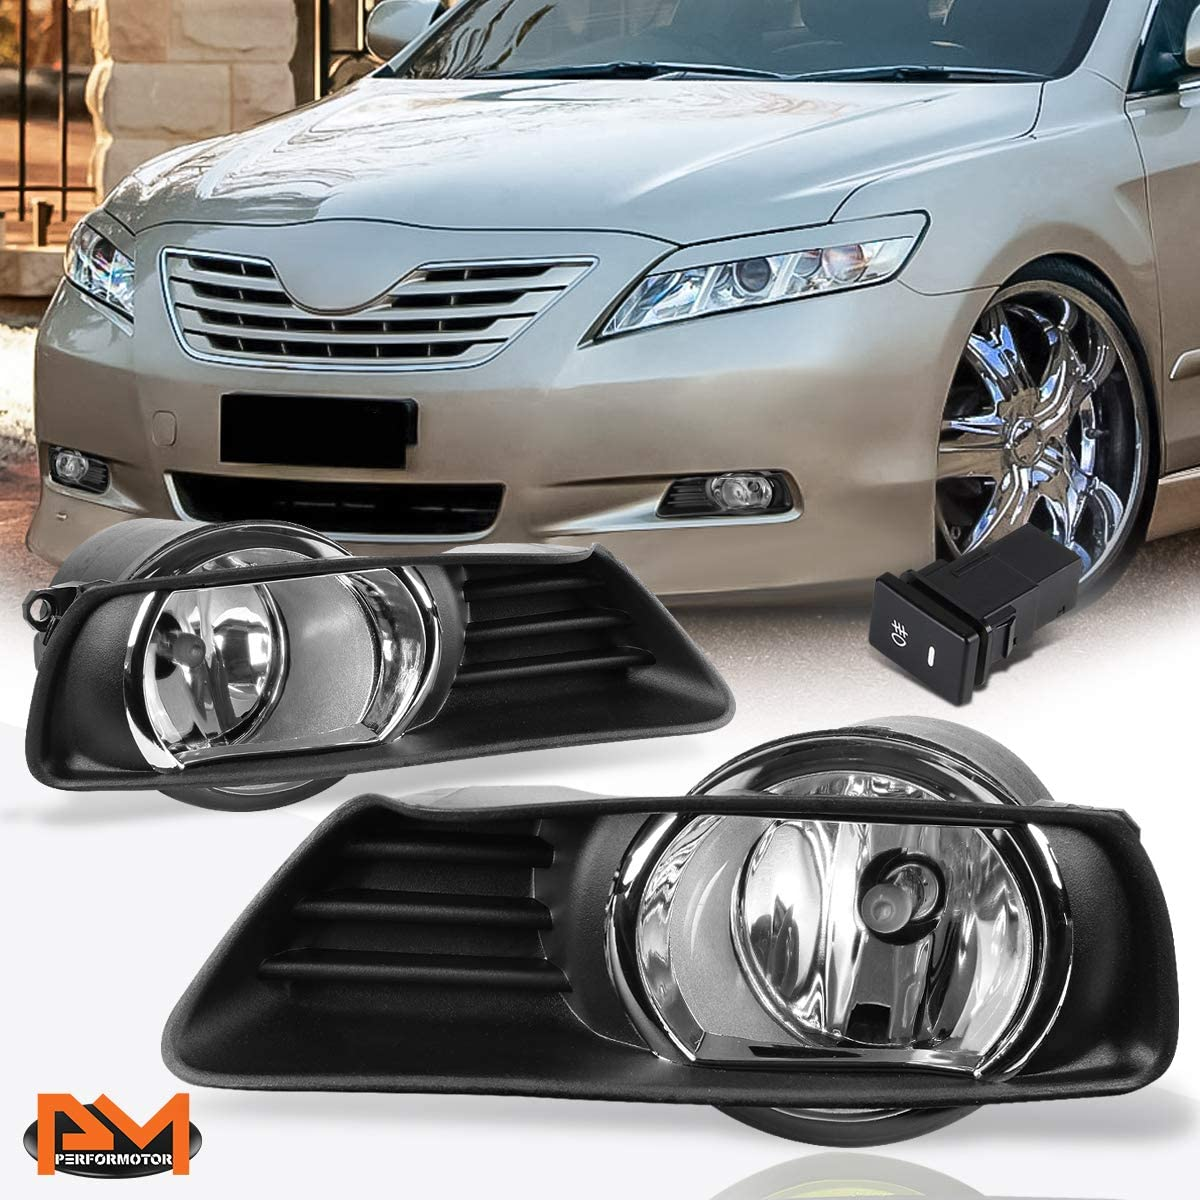 Clear Lens Front Bumper Chicago Mall Driving Fog Light Bezel+Switch Co free shipping w Lamp